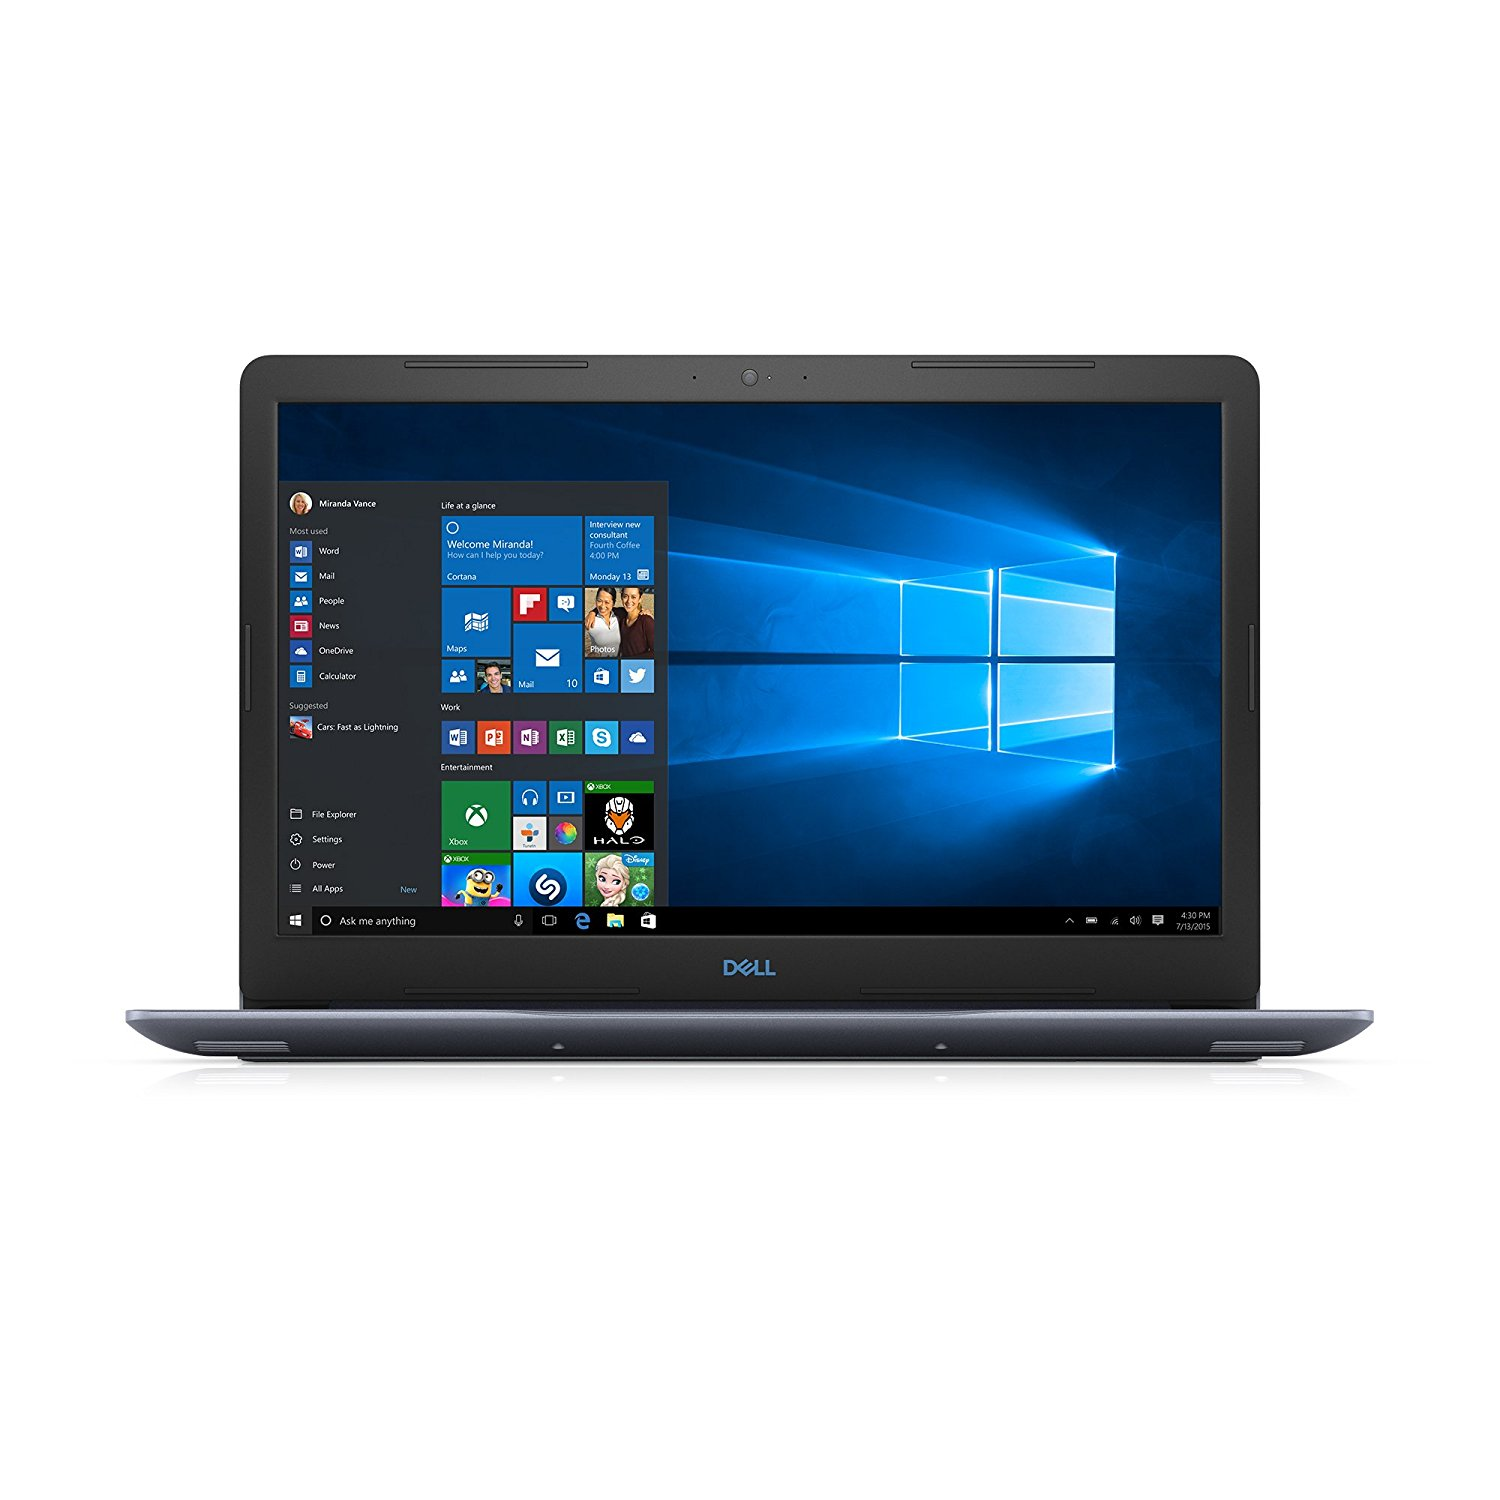 Notebook Dell G3 3779 17.3 Full HD Intel Core i5-8300H GTX 1050 Ti-4GB RAM 8GB HDD 1TB + SSD 128GB Linux